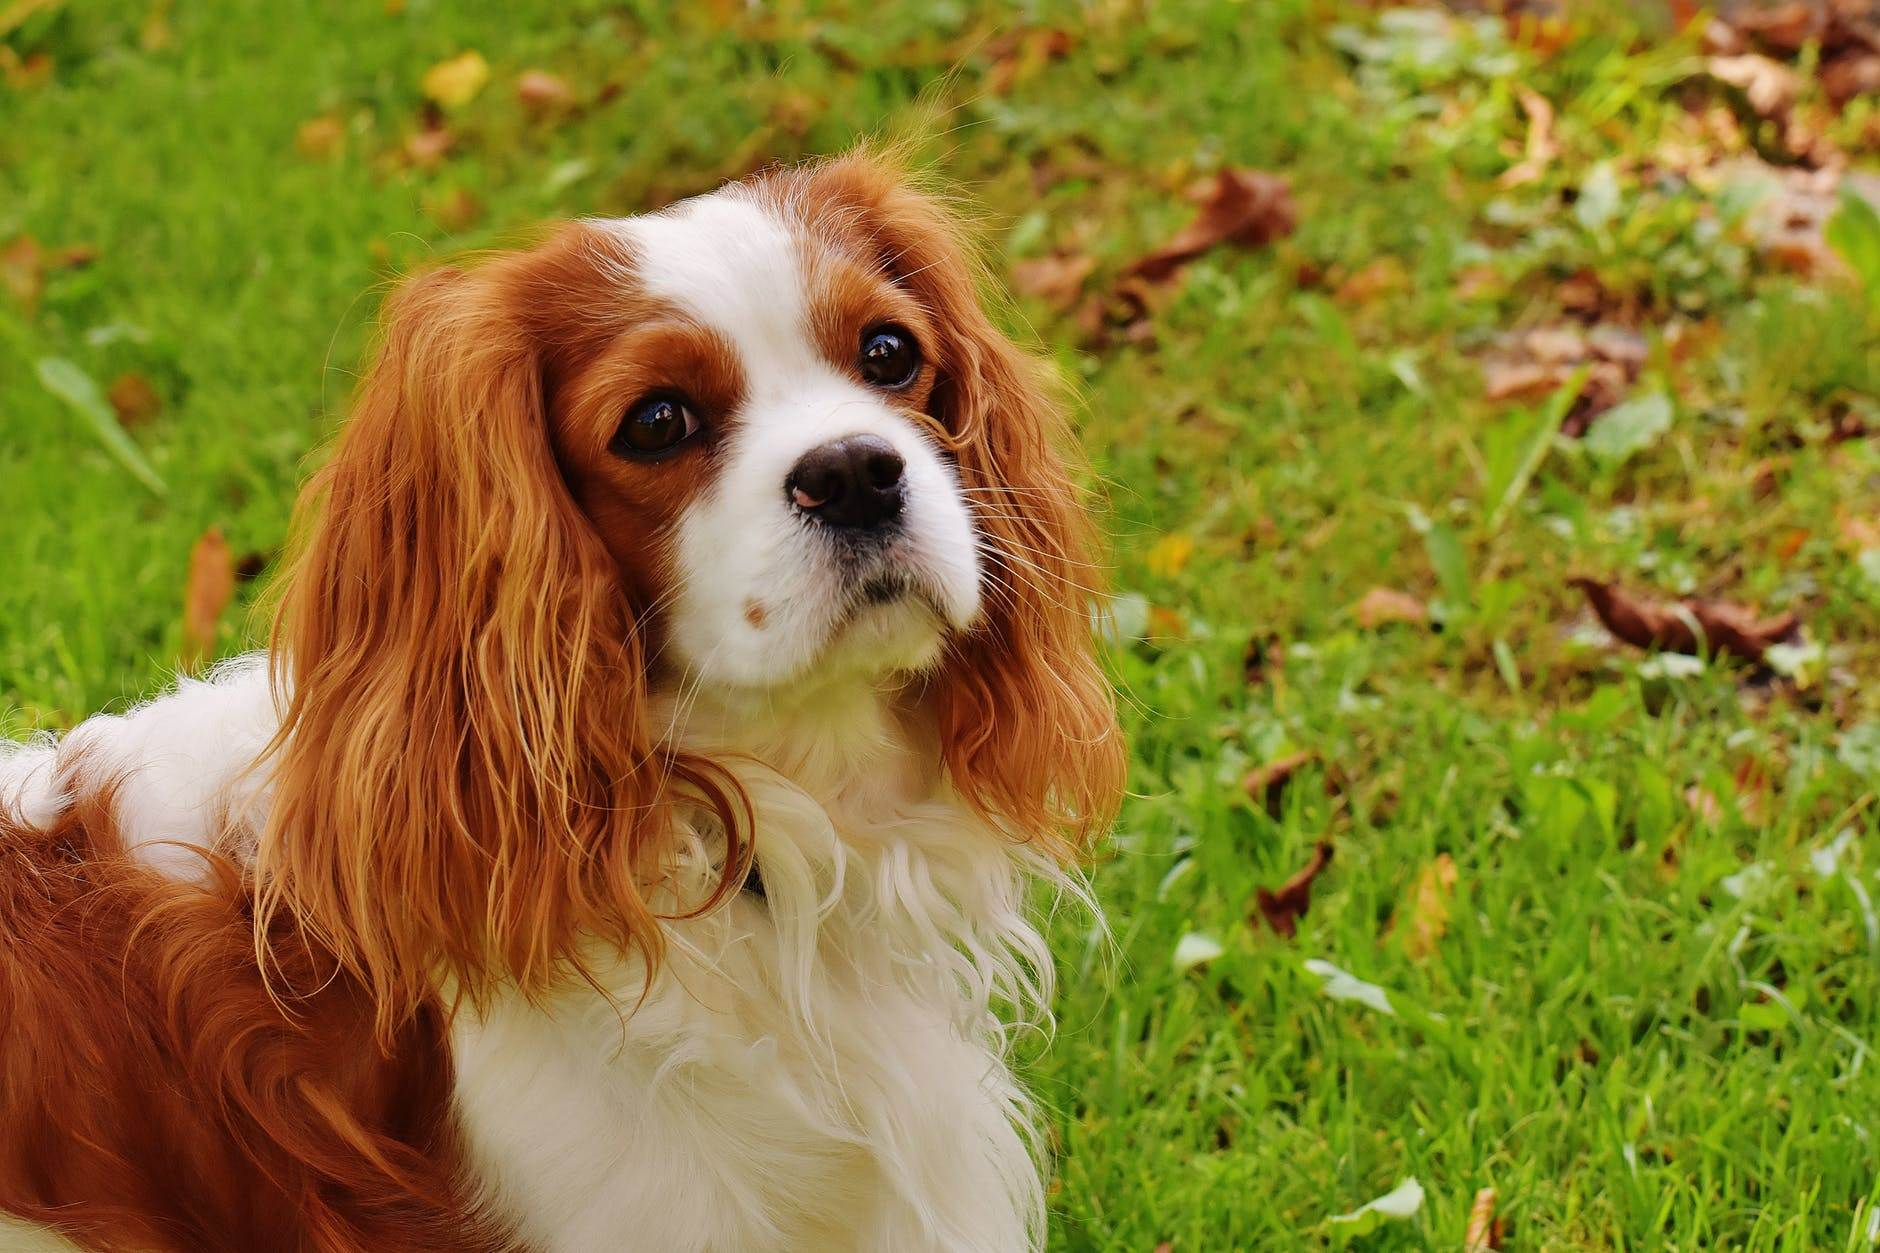 Making Money From Dog Cruelty - This Must End